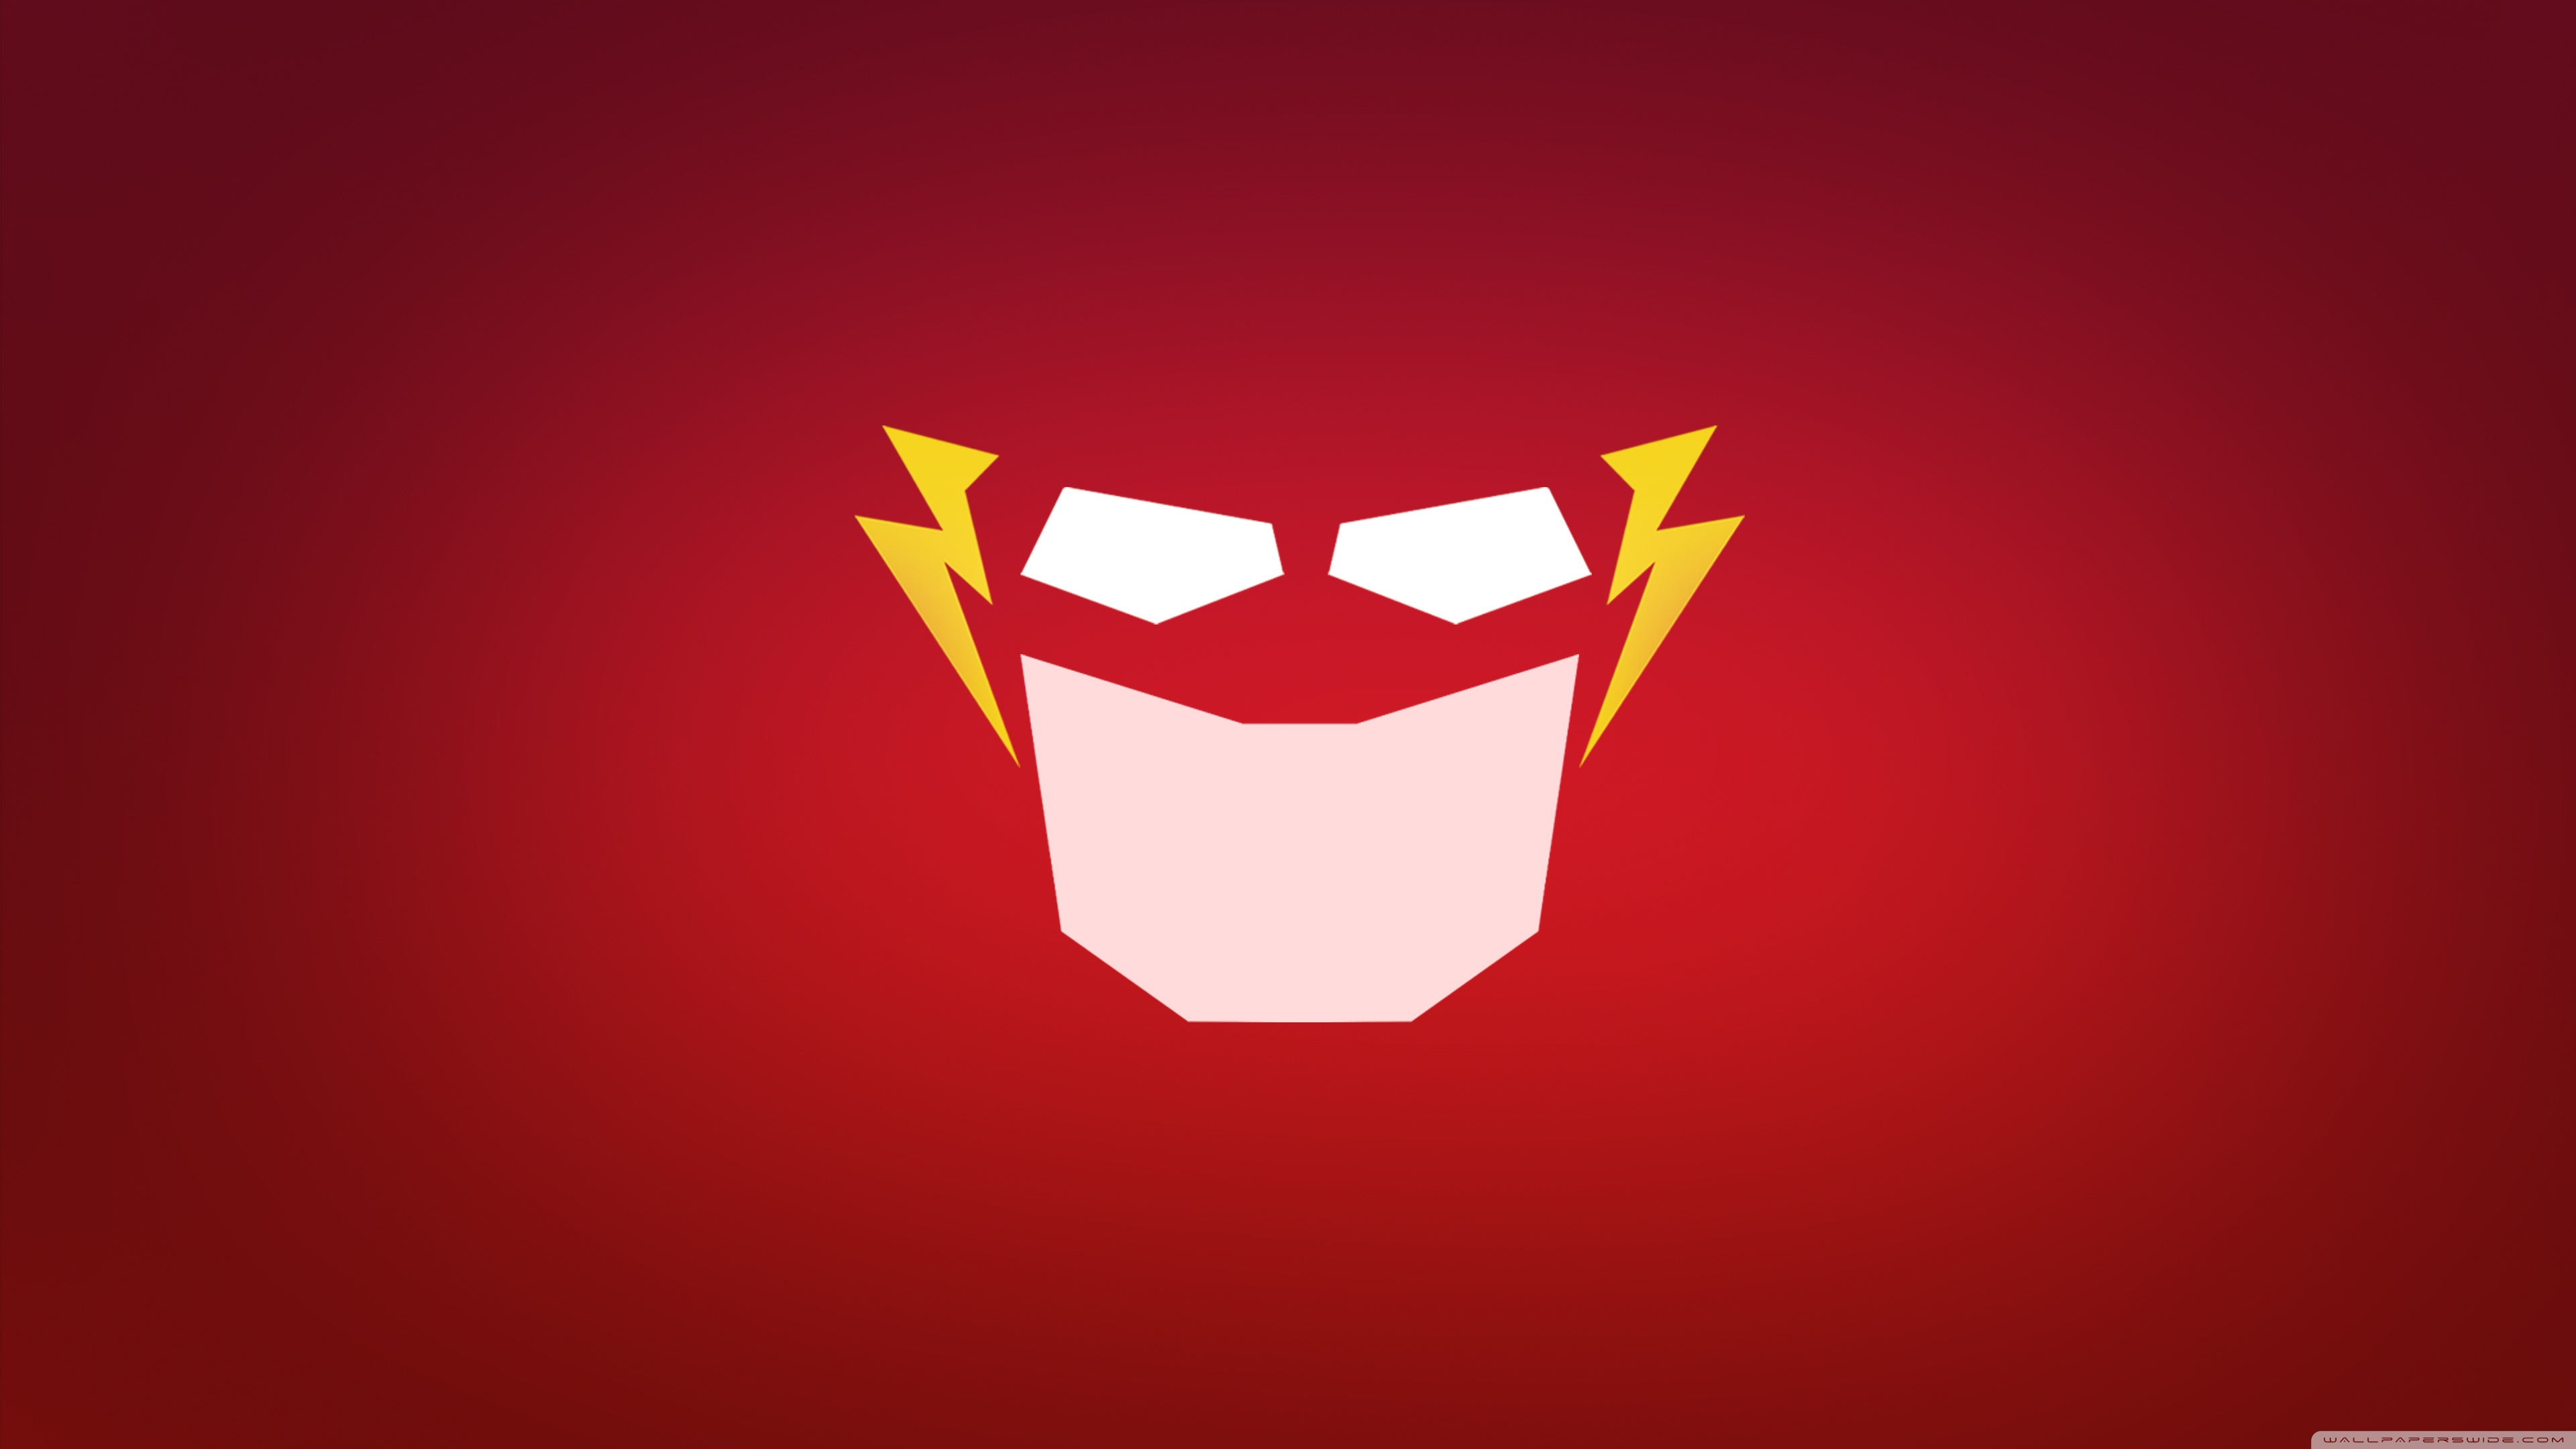 flash wallpaper 3840x2160 3840x2160